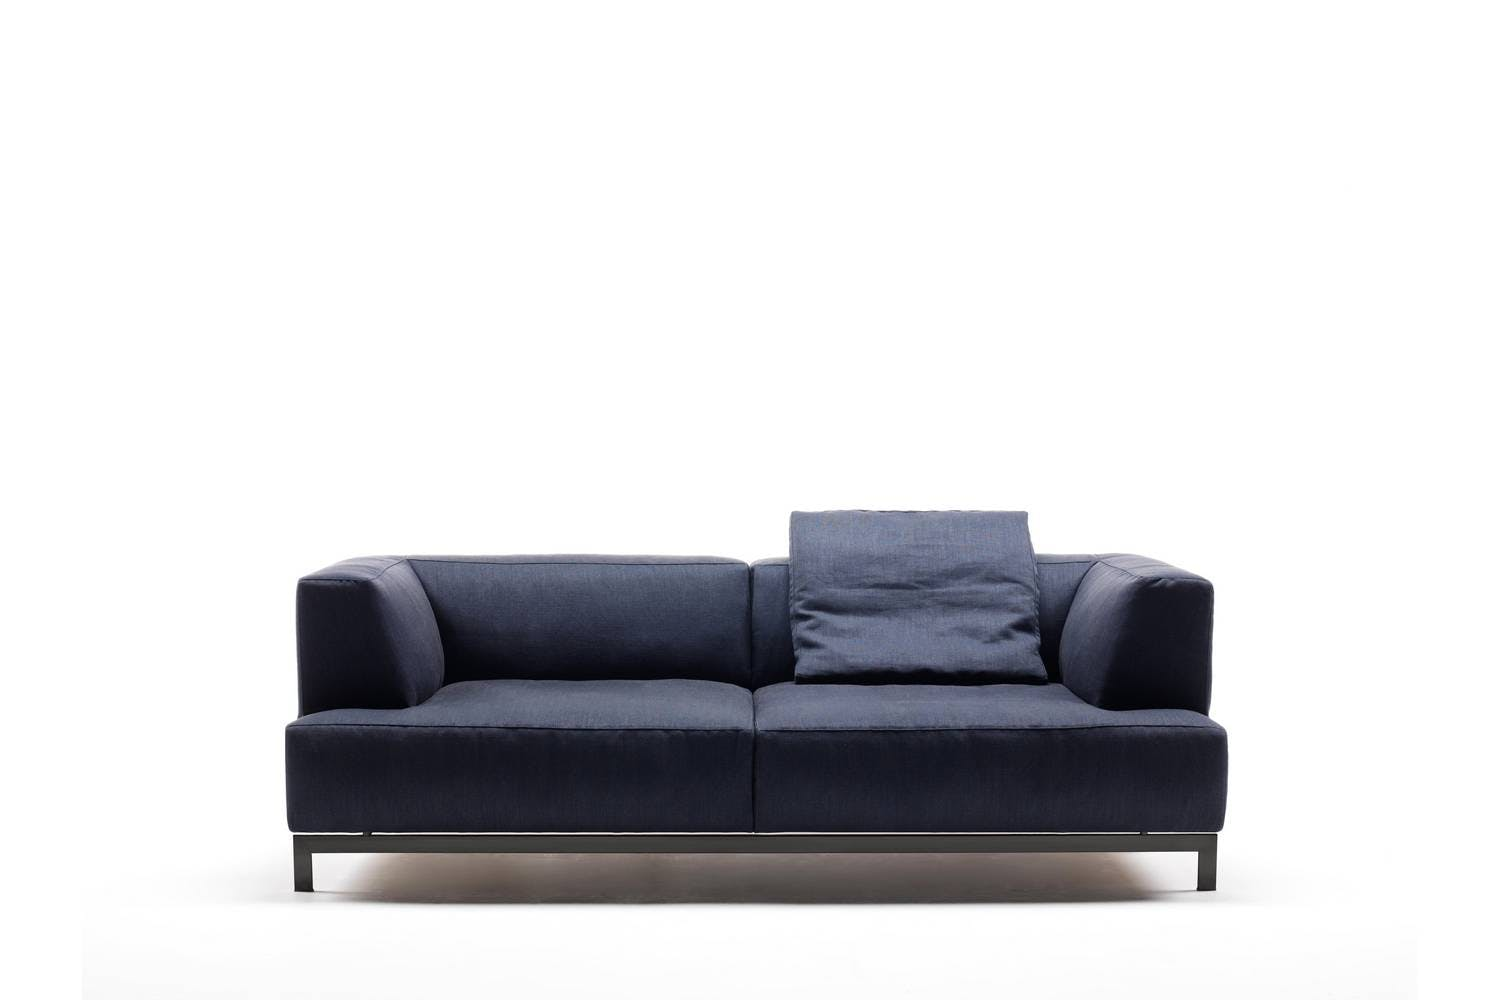 metrocubo sofa by piero lissoni for living divani space. Black Bedroom Furniture Sets. Home Design Ideas